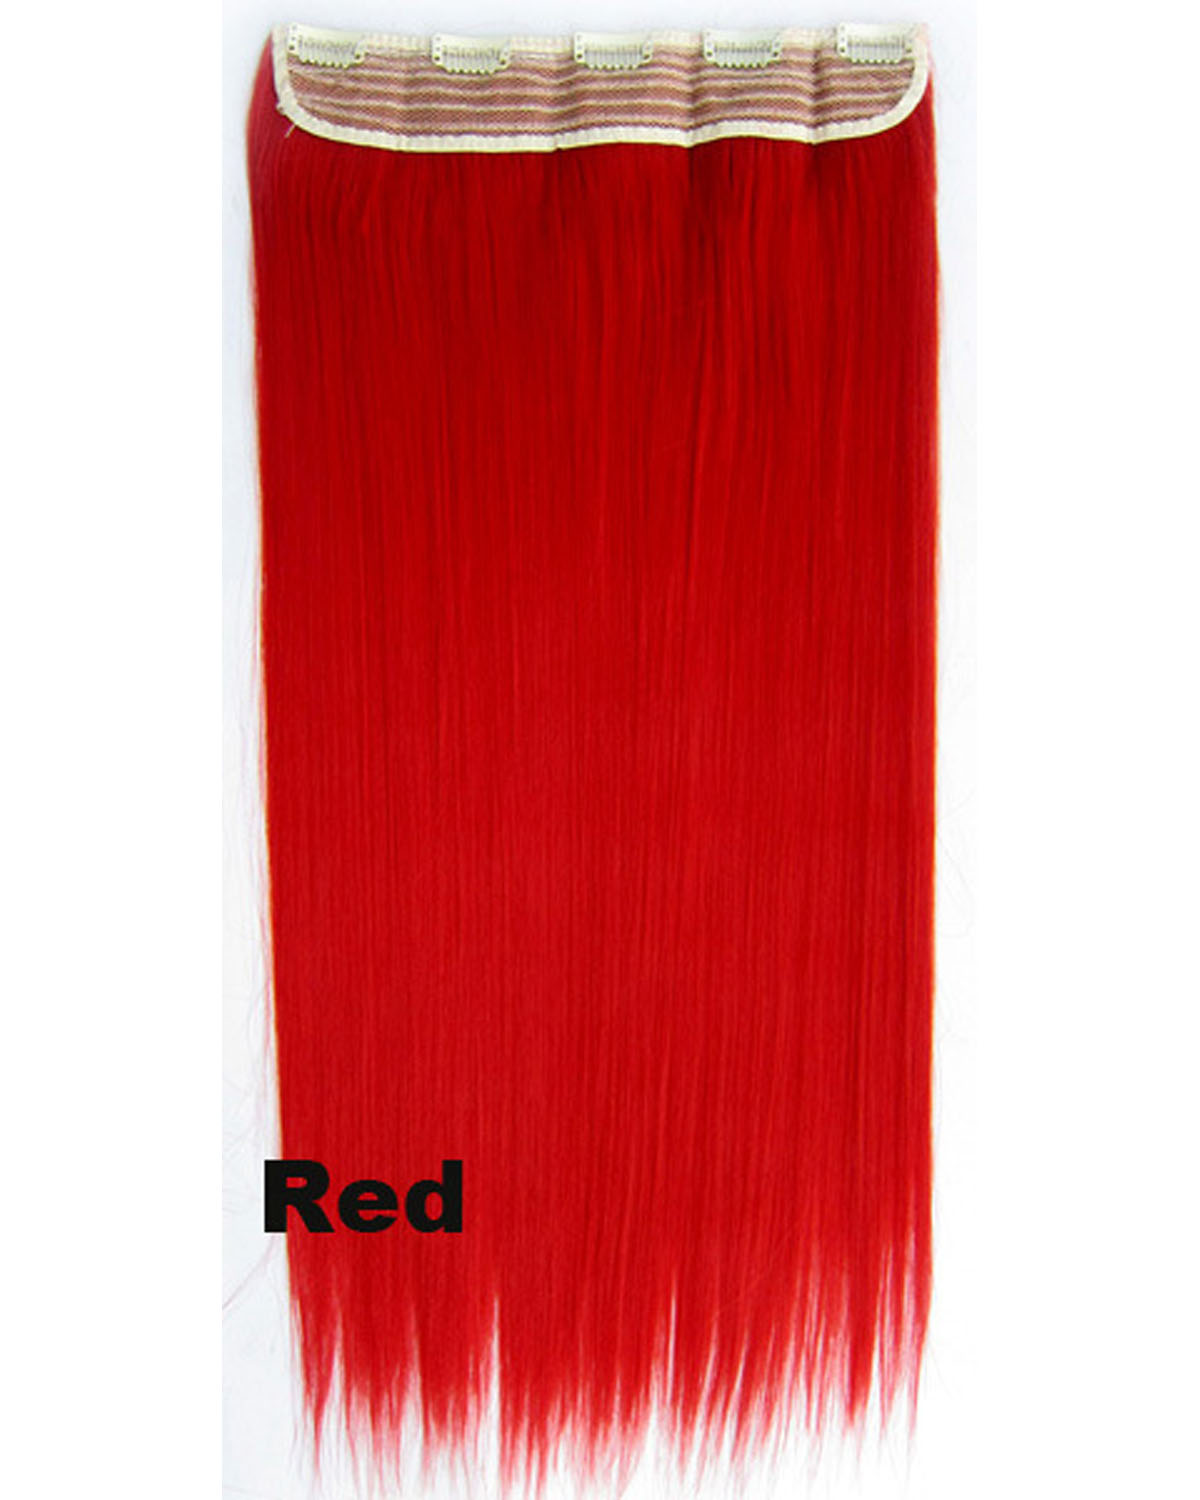 24 inch Smooth Straight and Long One Piece 5 Clips Clip in Synthetic Hair Extension Red 60cm 130g